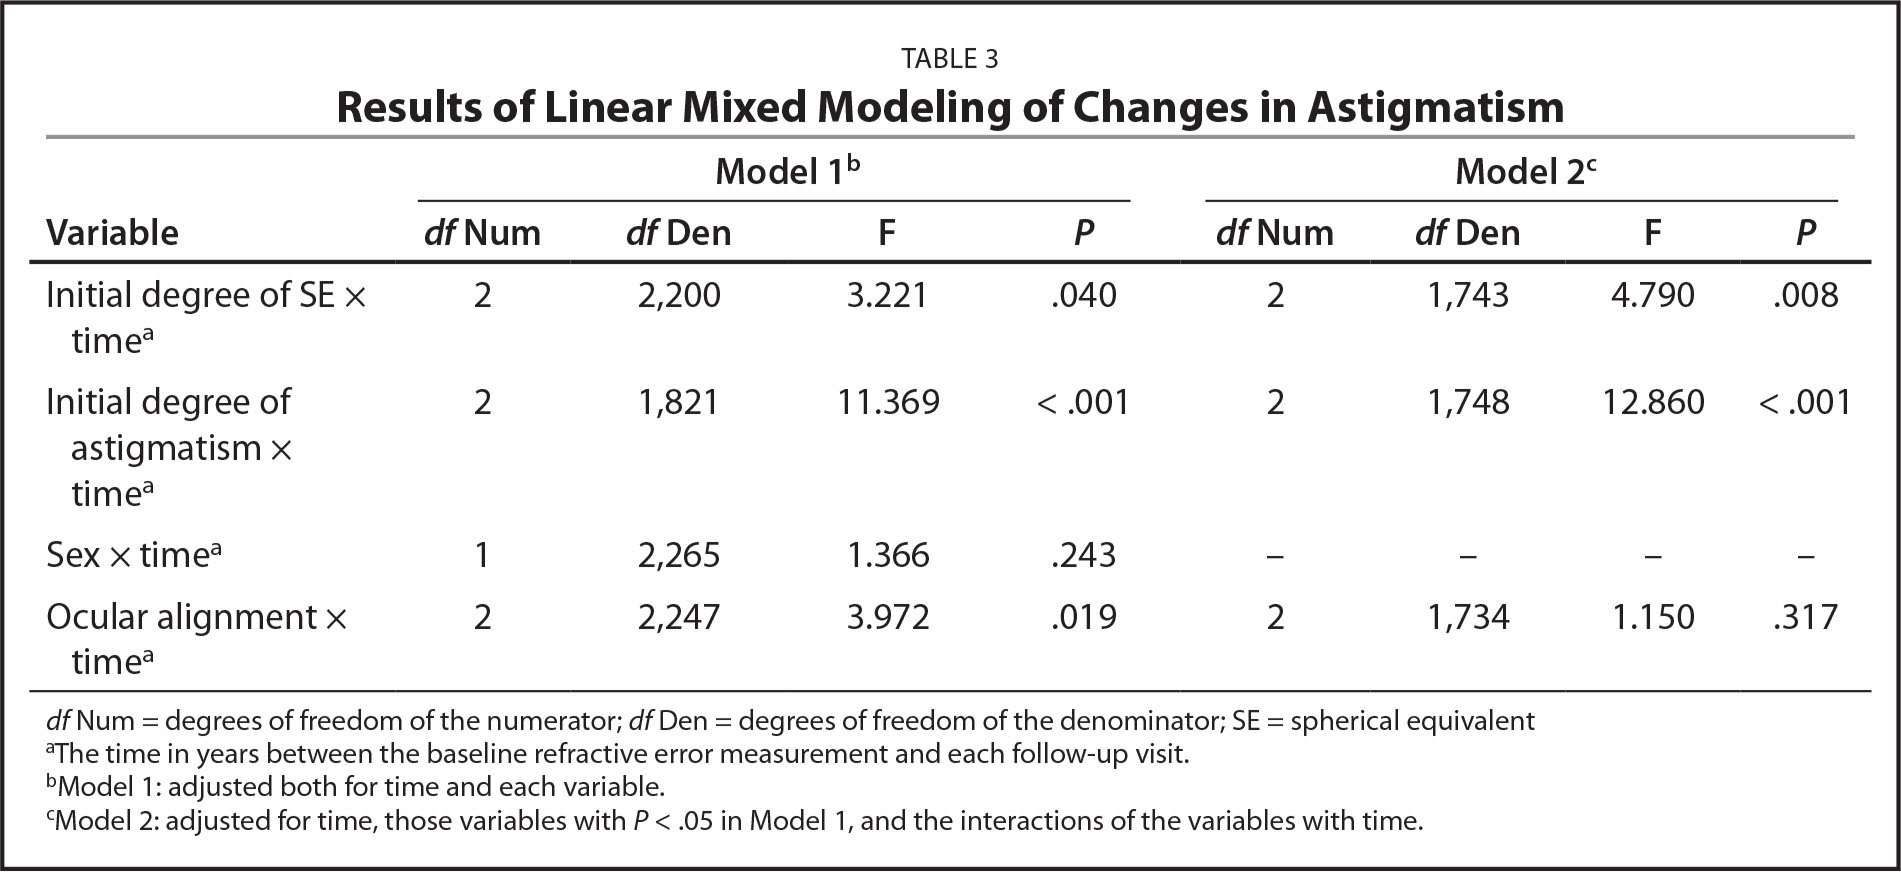 Results of Linear Mixed Modeling of Changes in Astigmatism